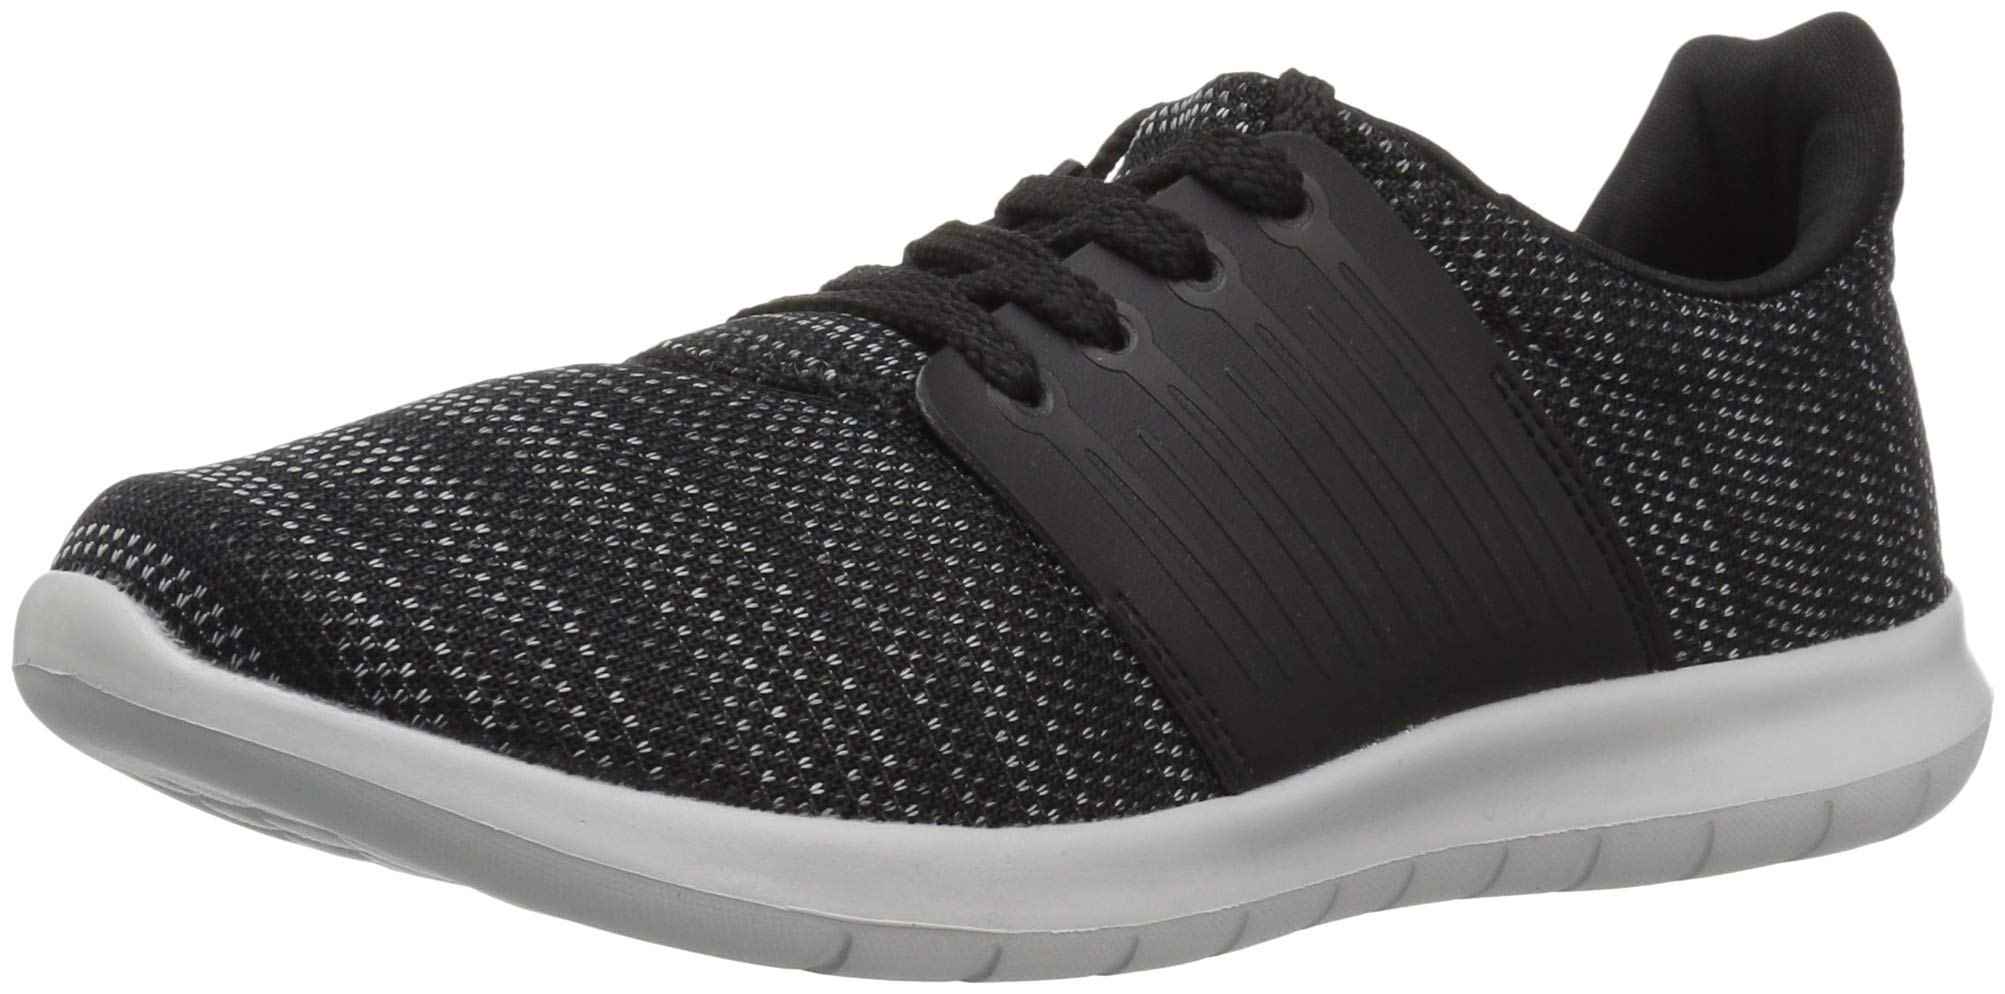 The Children's Place Boys' Athletic Sneaker, Black, Youth 4 Child US Little Kid